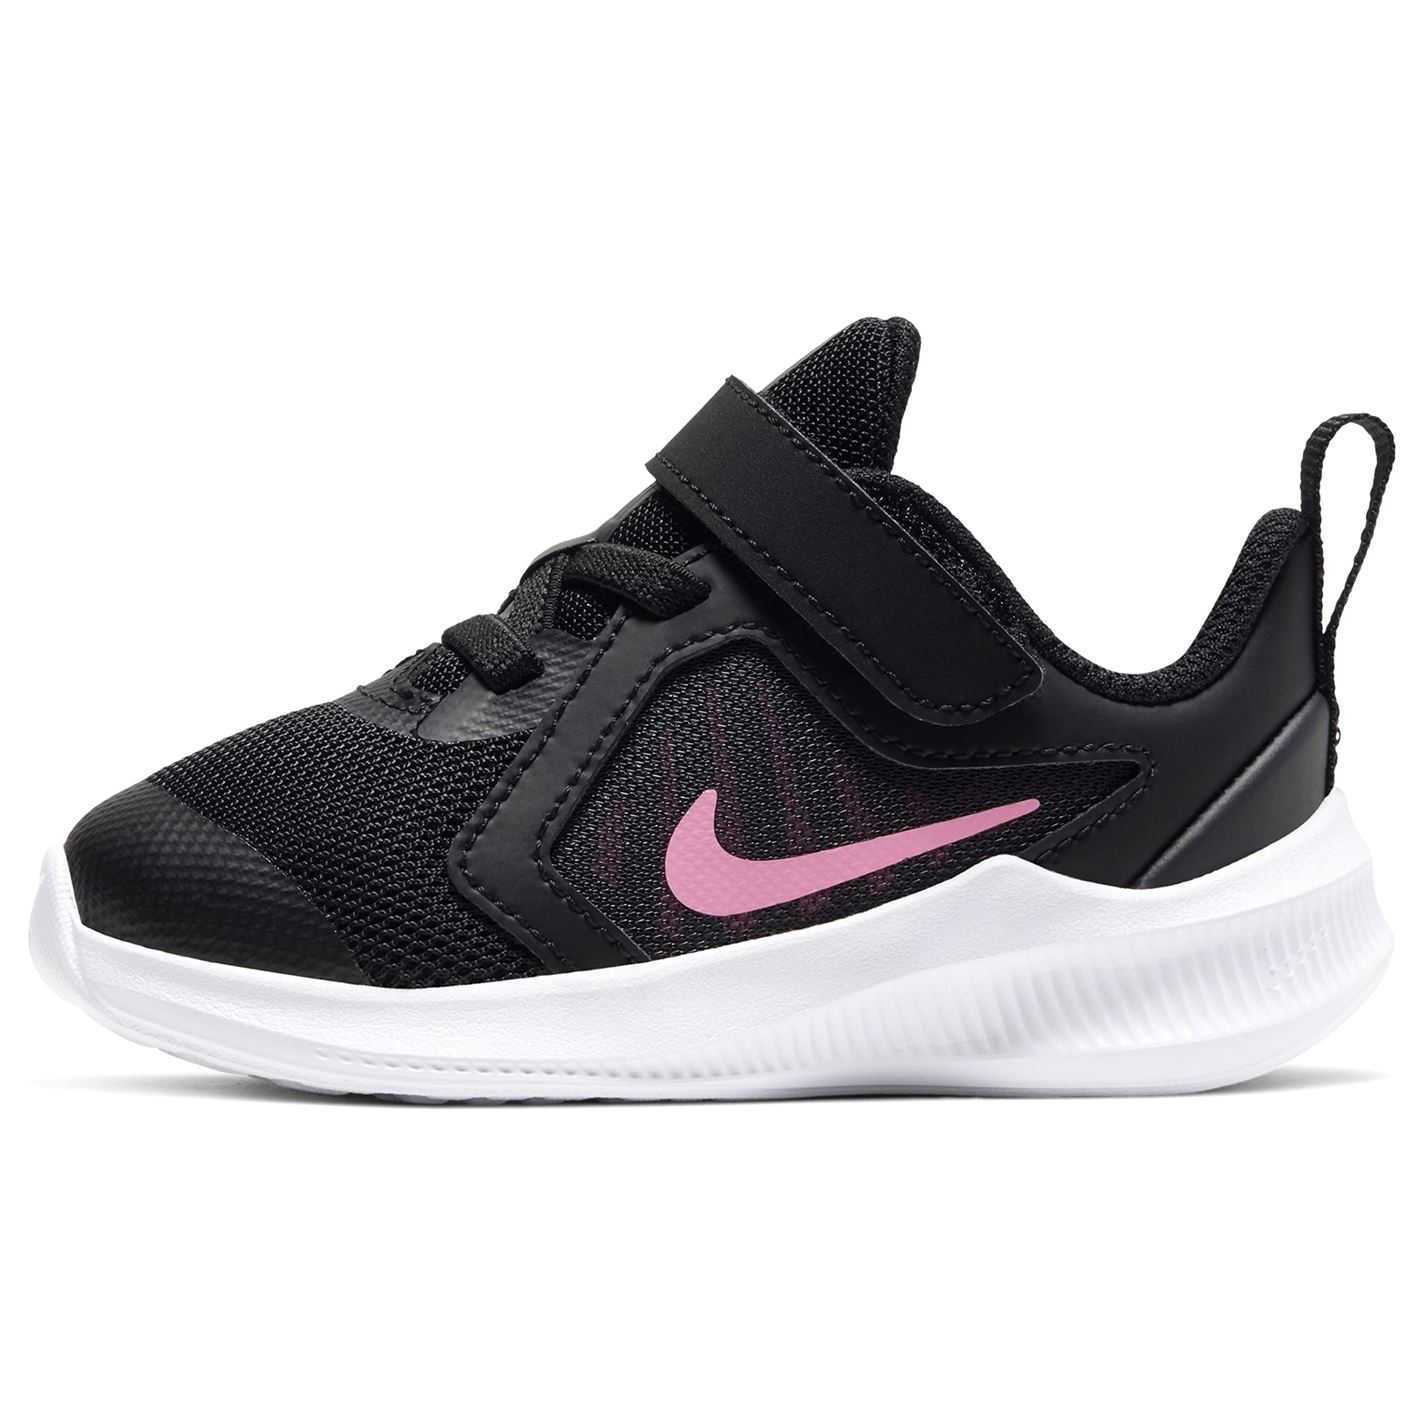 Nike Downshifter 10 Trainers Infant Girls BLACK/PINK GLOW-ANTHRACITE-WHI